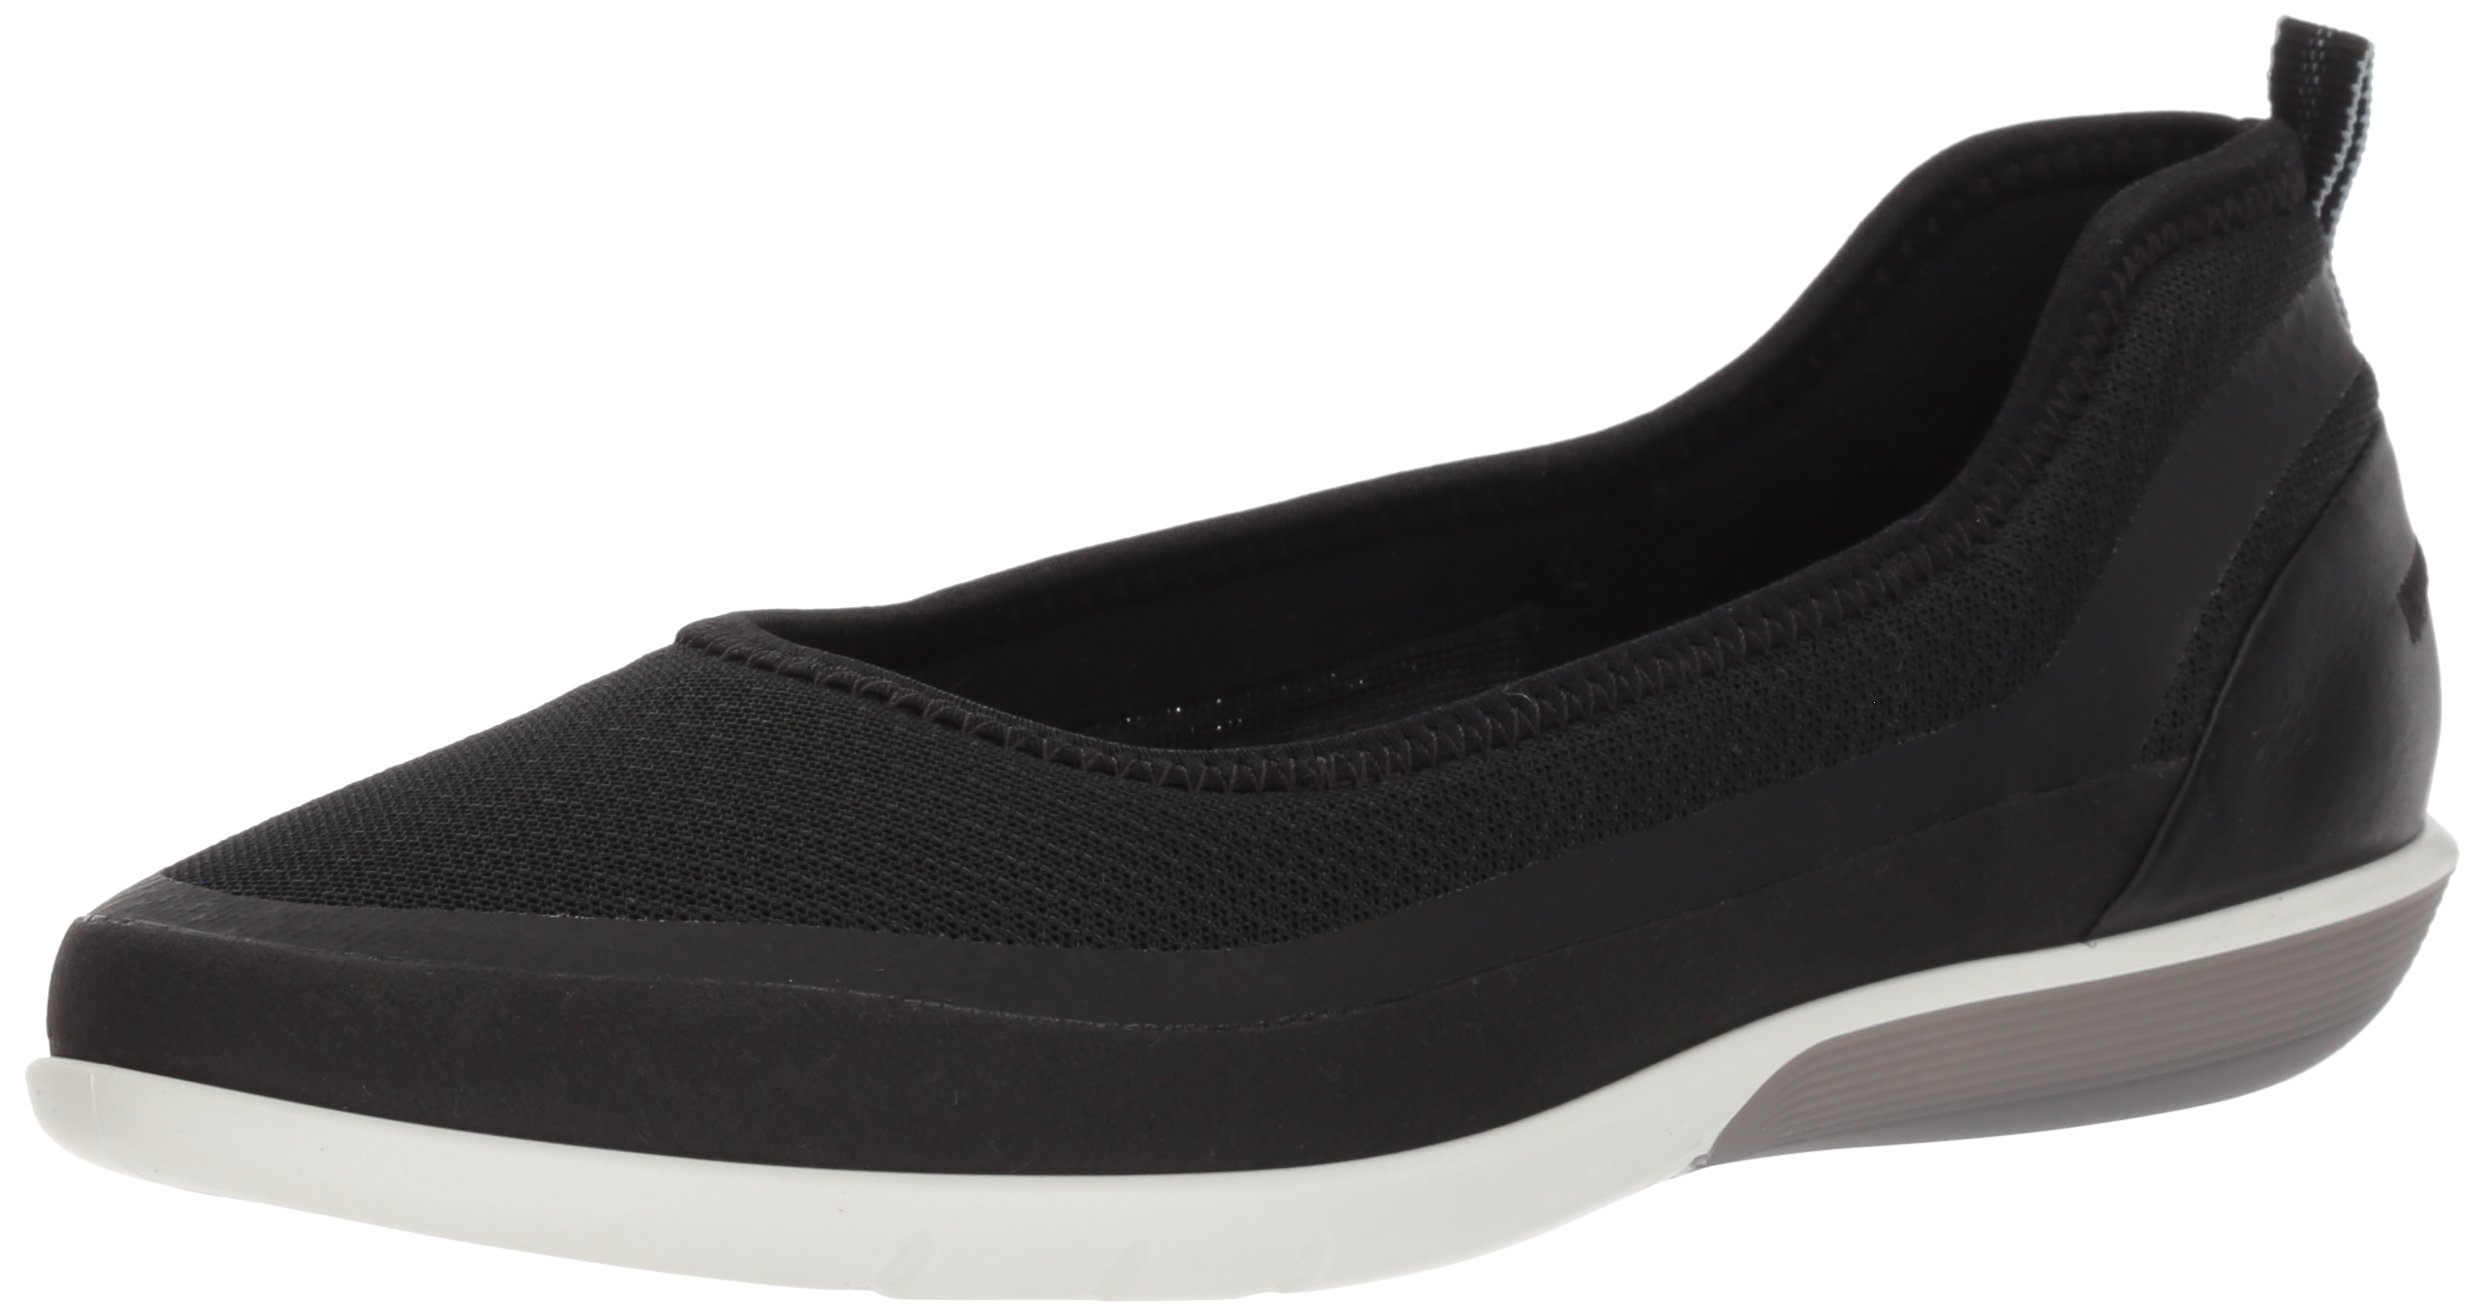 ECCO Women's Sense Light Ballerina Ballet Flat, Black/Black, 38 Medium EU (7-7.5 US)